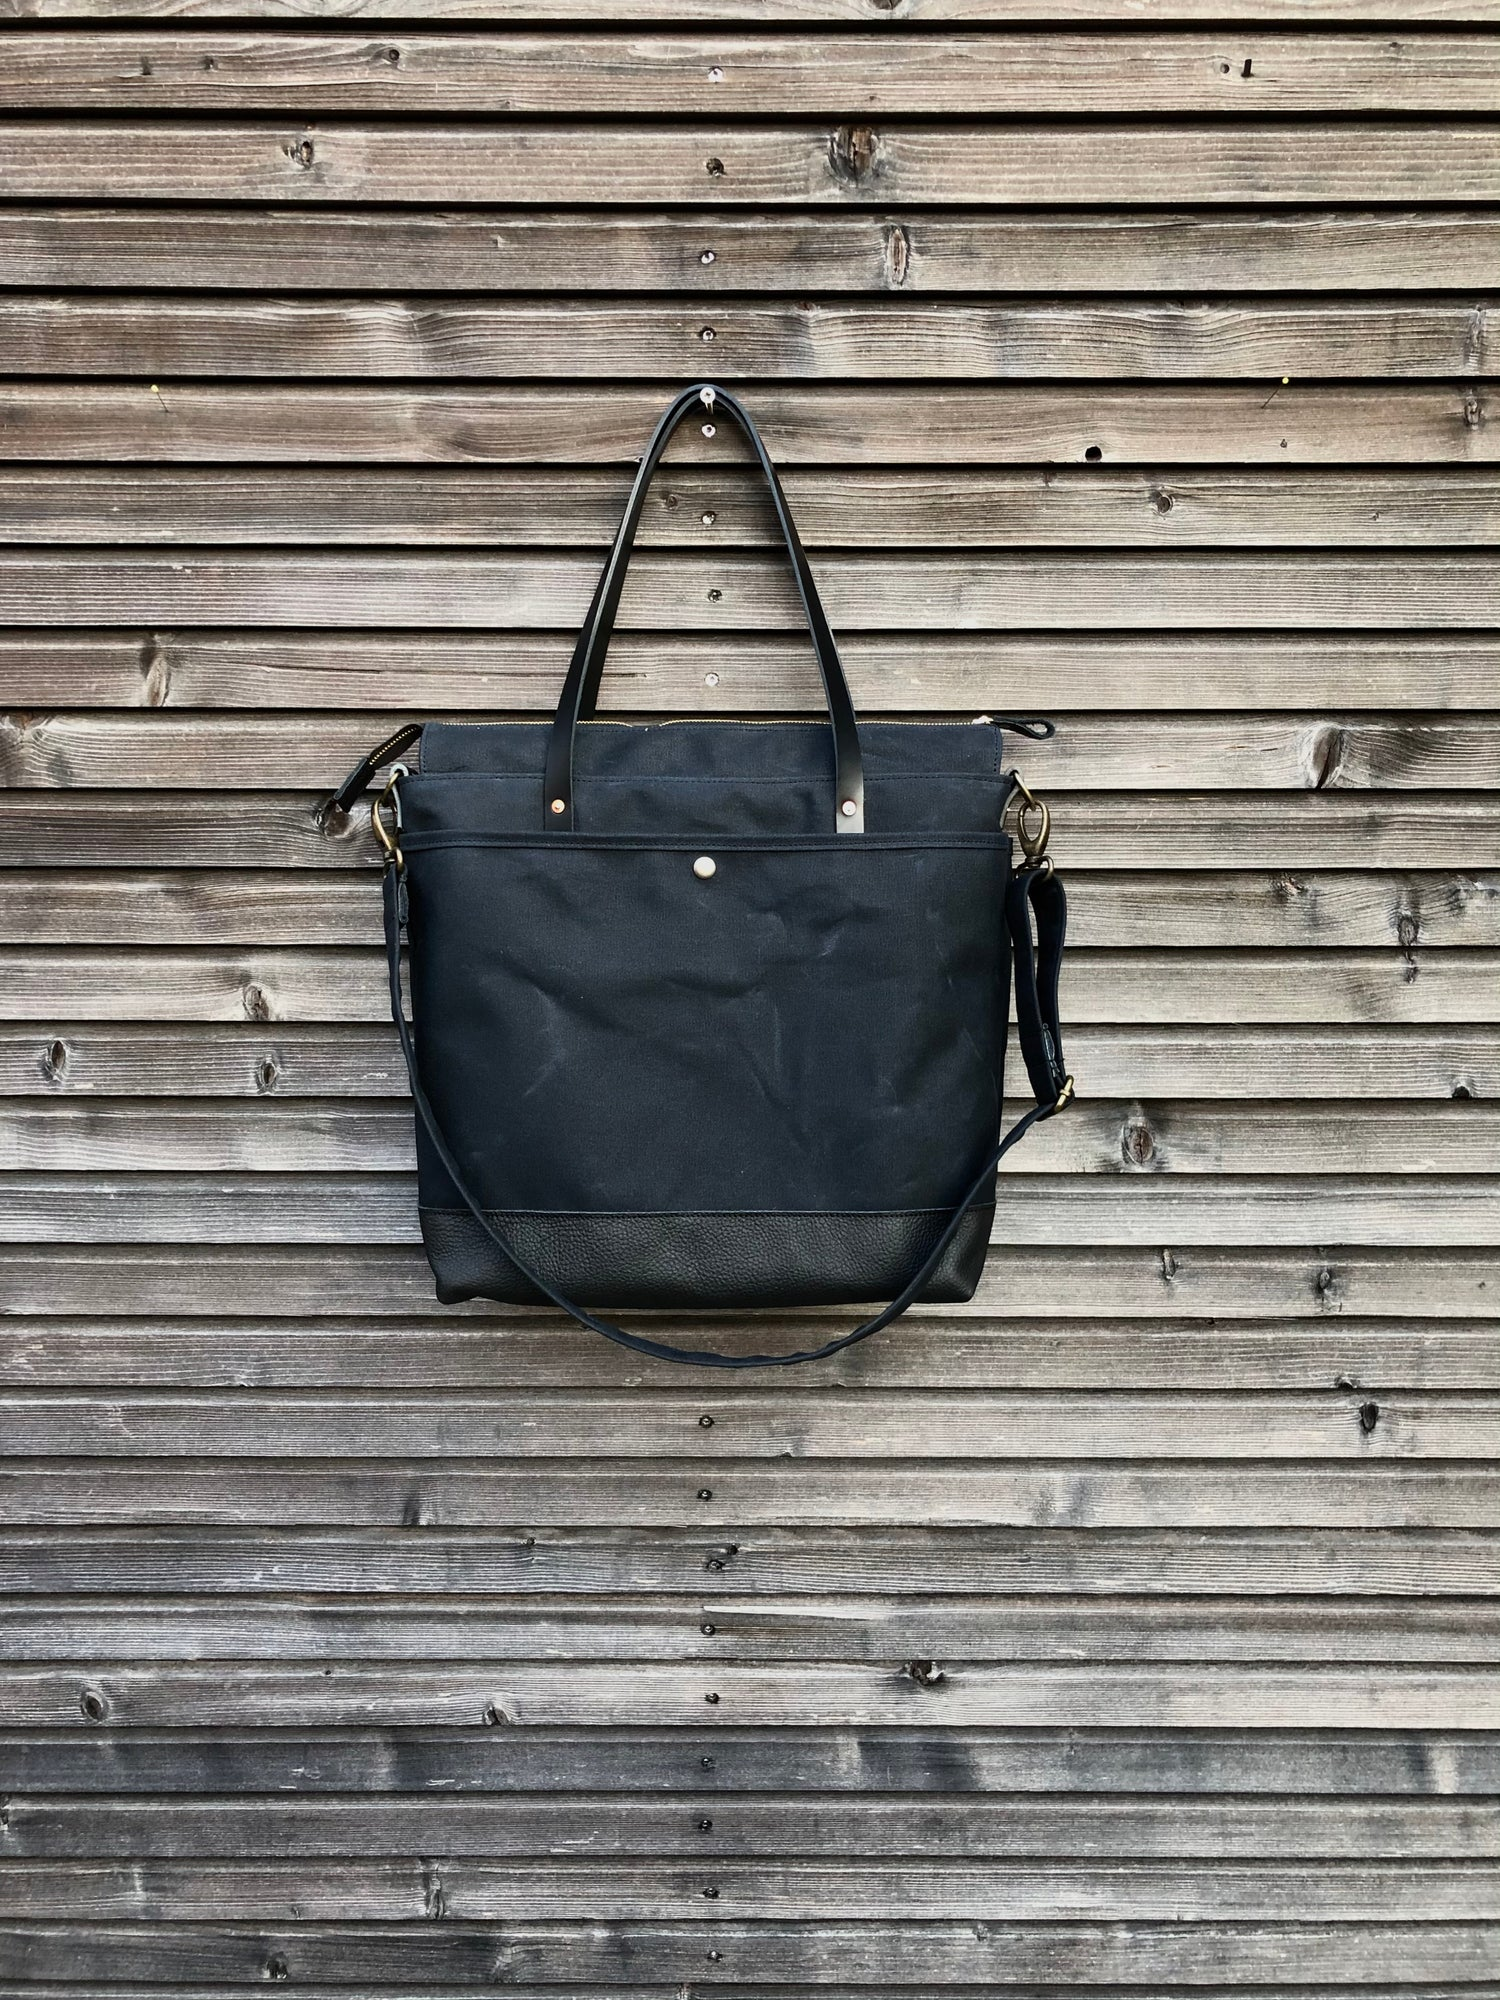 Image of Weekend bag / diaper bag in waxed canvas with leather handles and bottom COLLECTION UNISEX